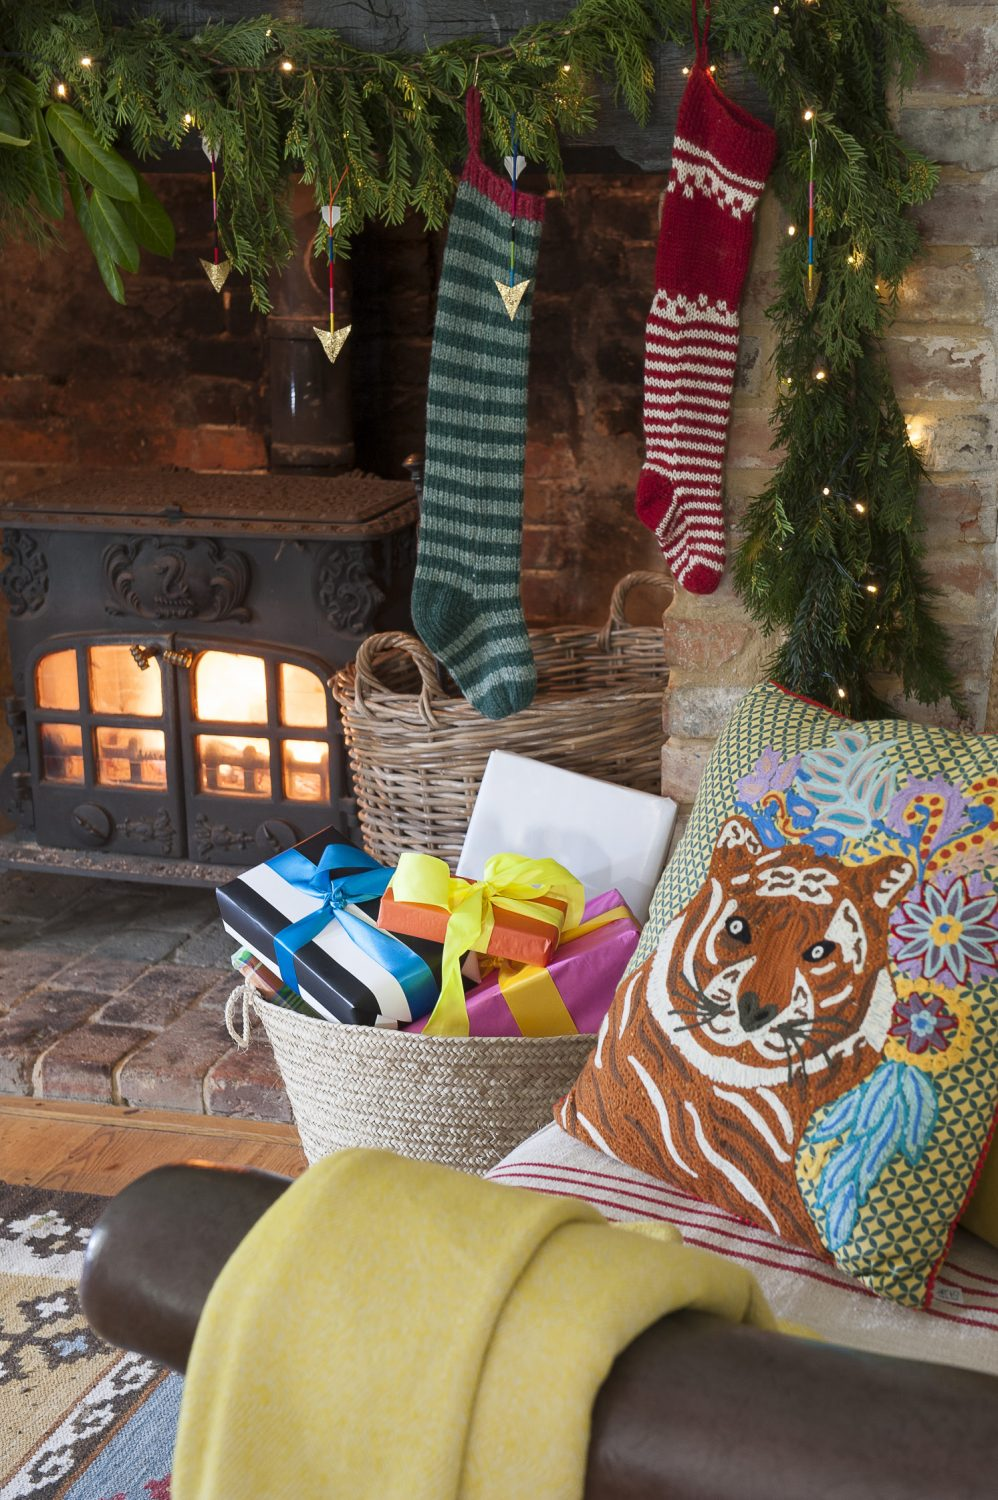 Presents lie wrapped in woven baskets beside the cosy woodburning stove